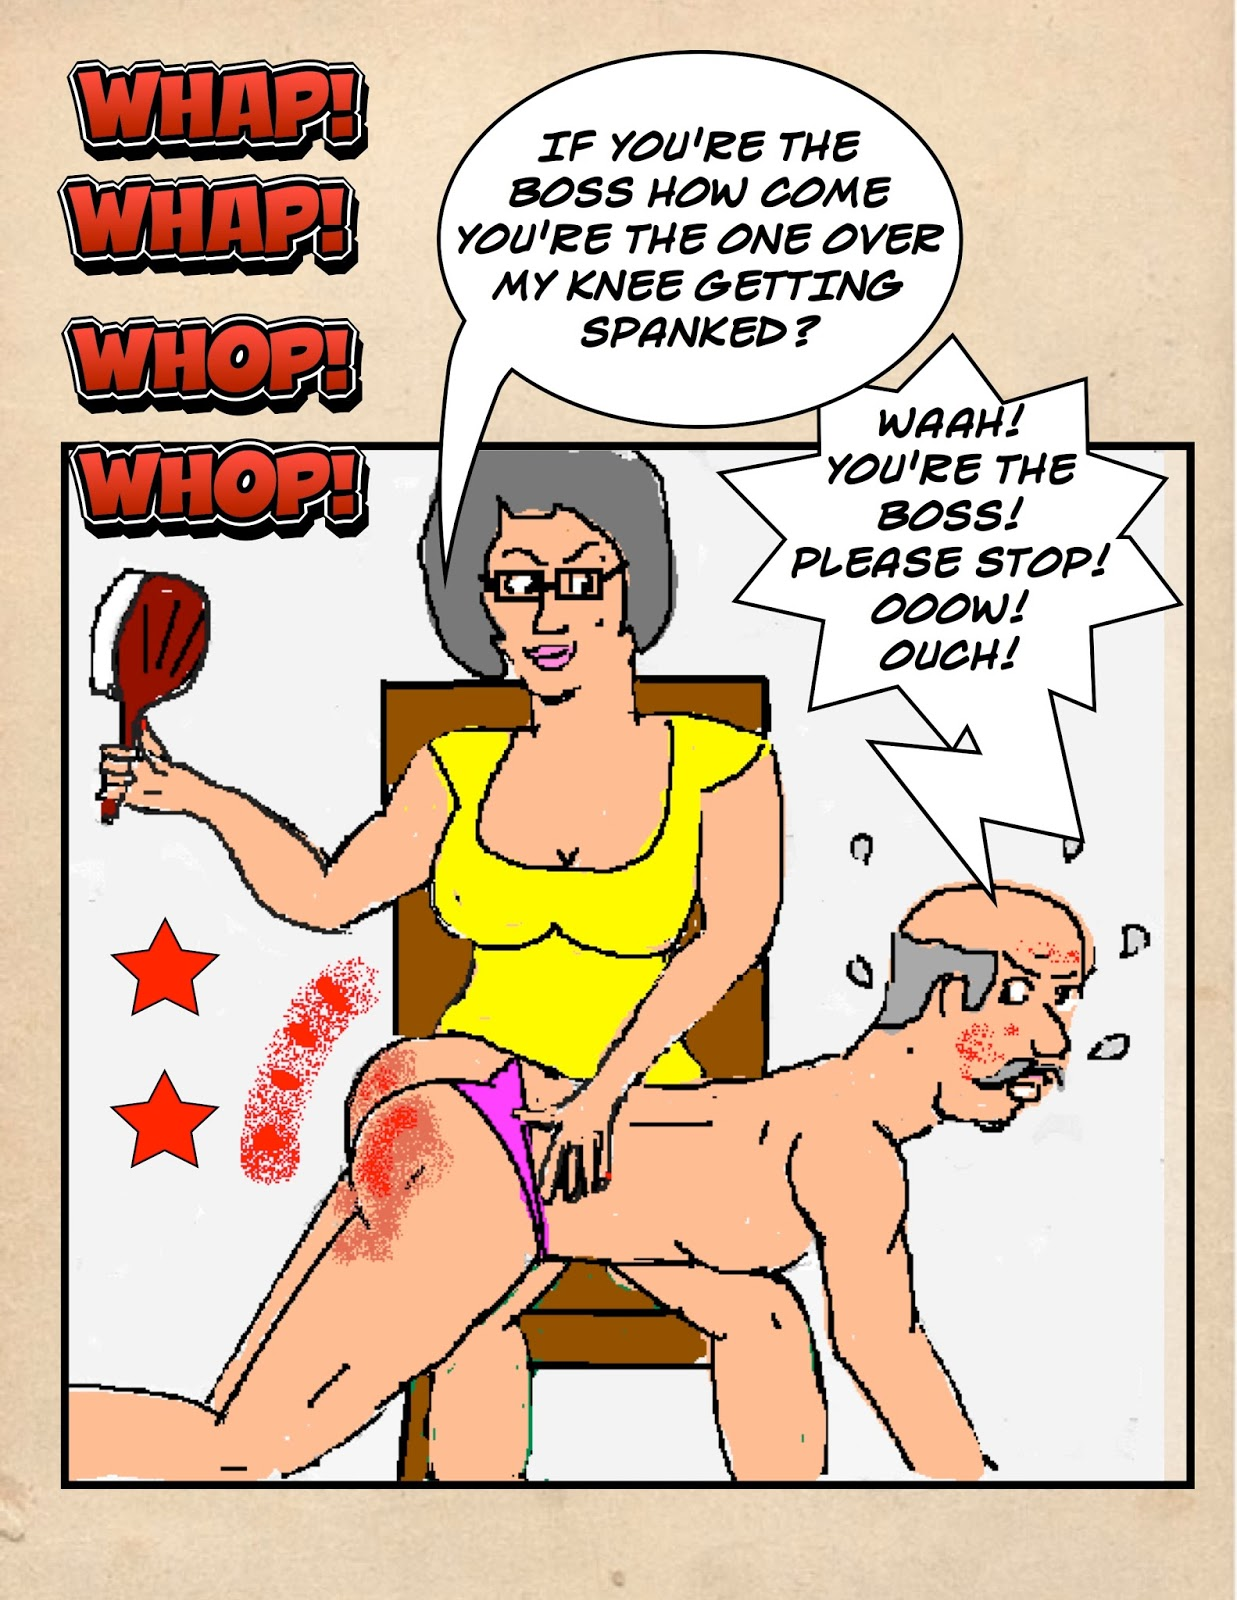 Adult cartoon spanking